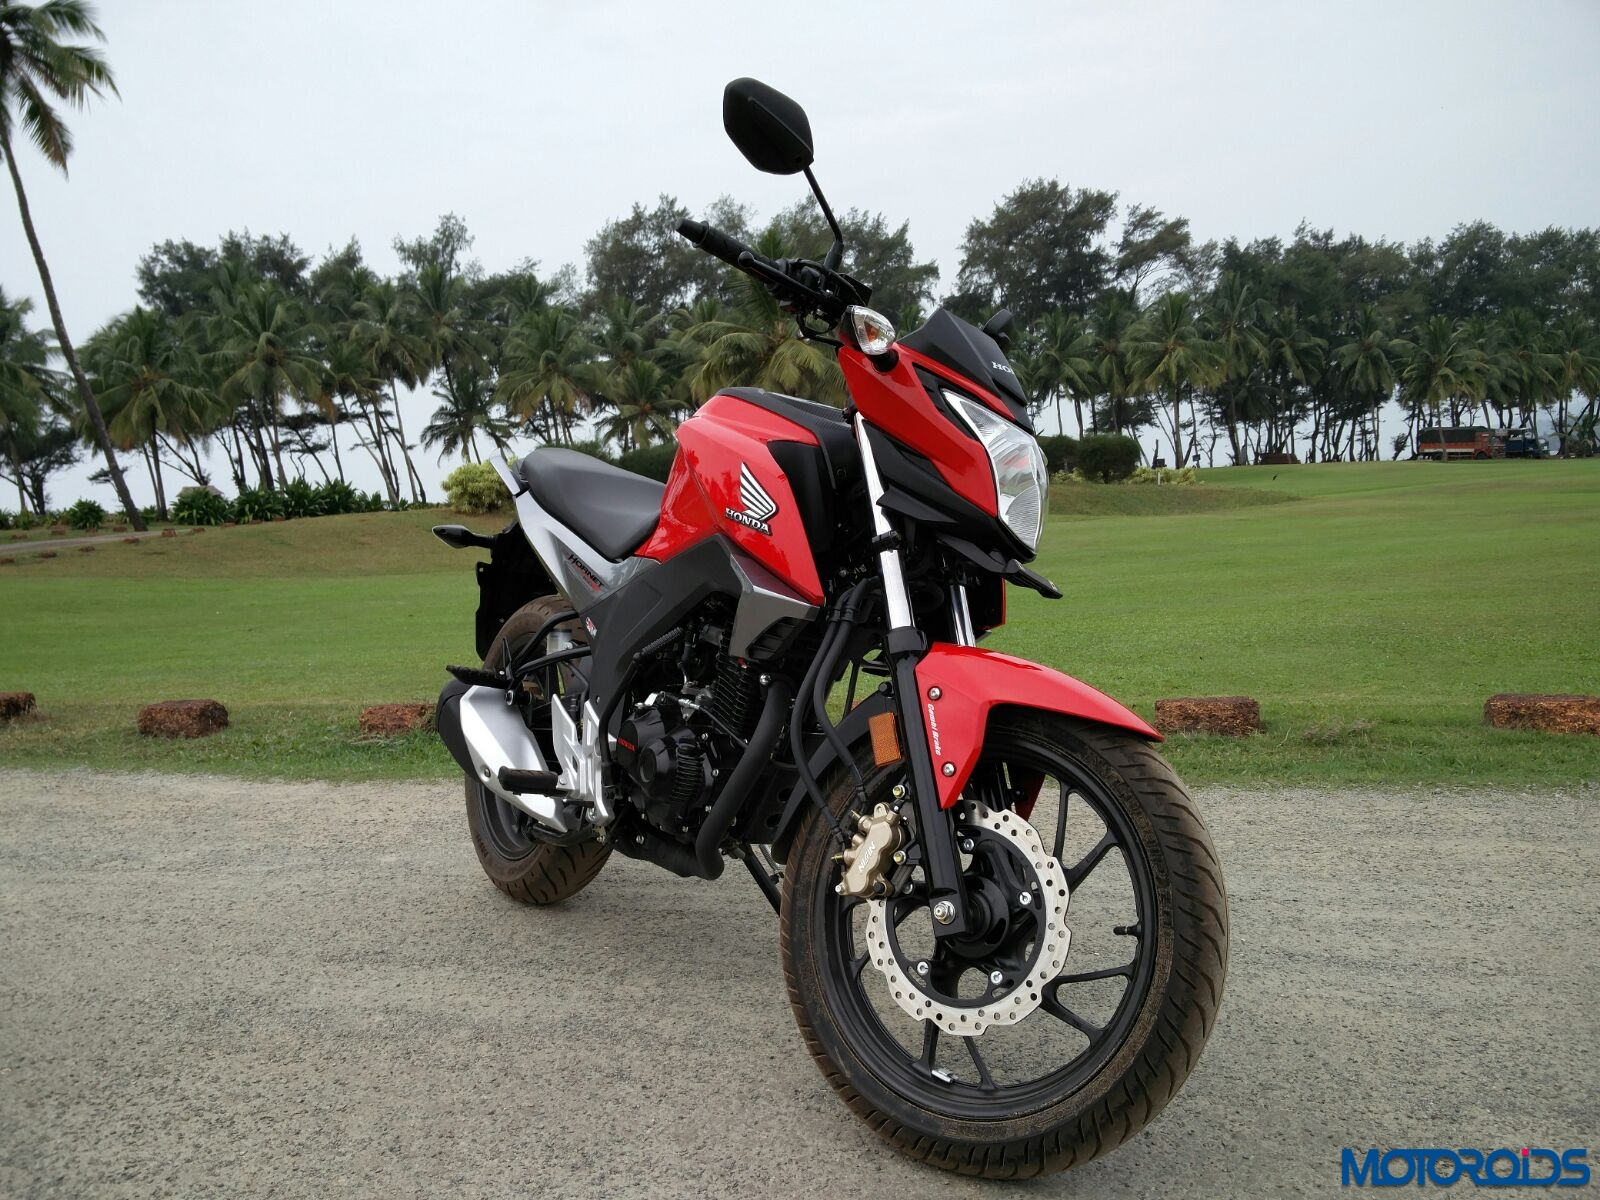 Honda CB Hornet 160R first ride review images specs and details 1600x1200